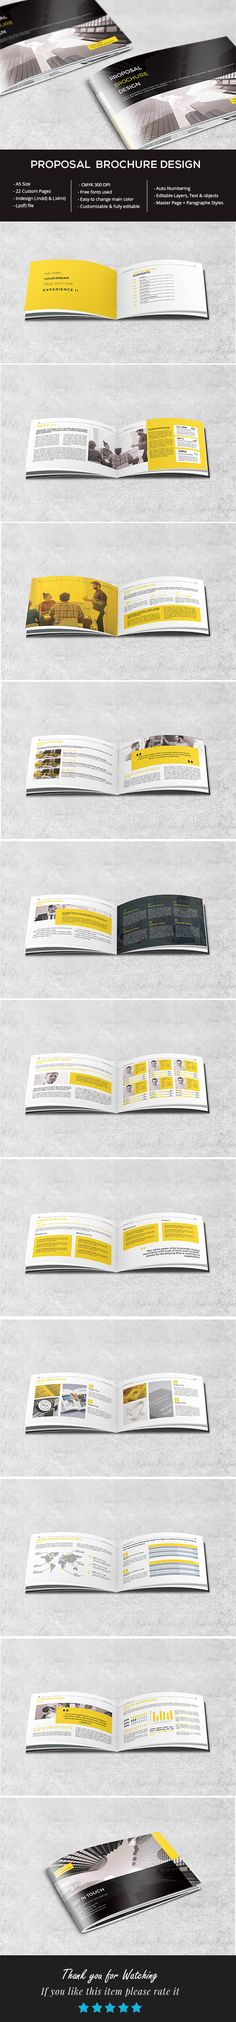 Get this Clean Proposal Brochure Design , suitable for any type of business, You can use it for several activities: business, corporate, construction, medical, marketing, travel, mobile app, photography, real estate, etc.